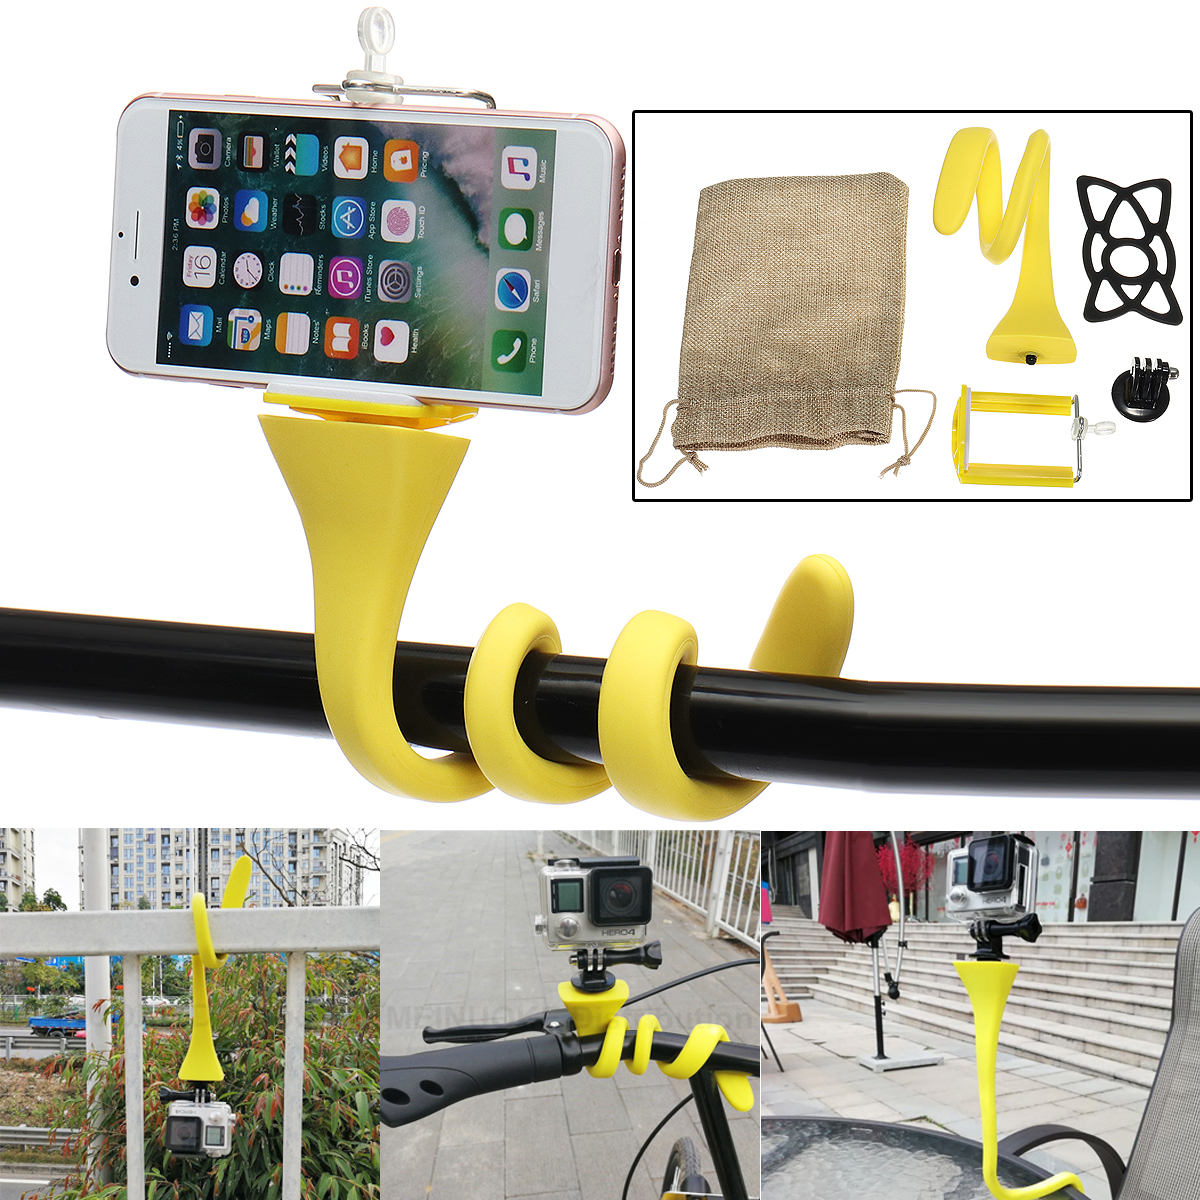 Banana Snake Pod Flexible Tripod Mount Selfie Stick for Sj4000 XIAOML Gopro Smartphone